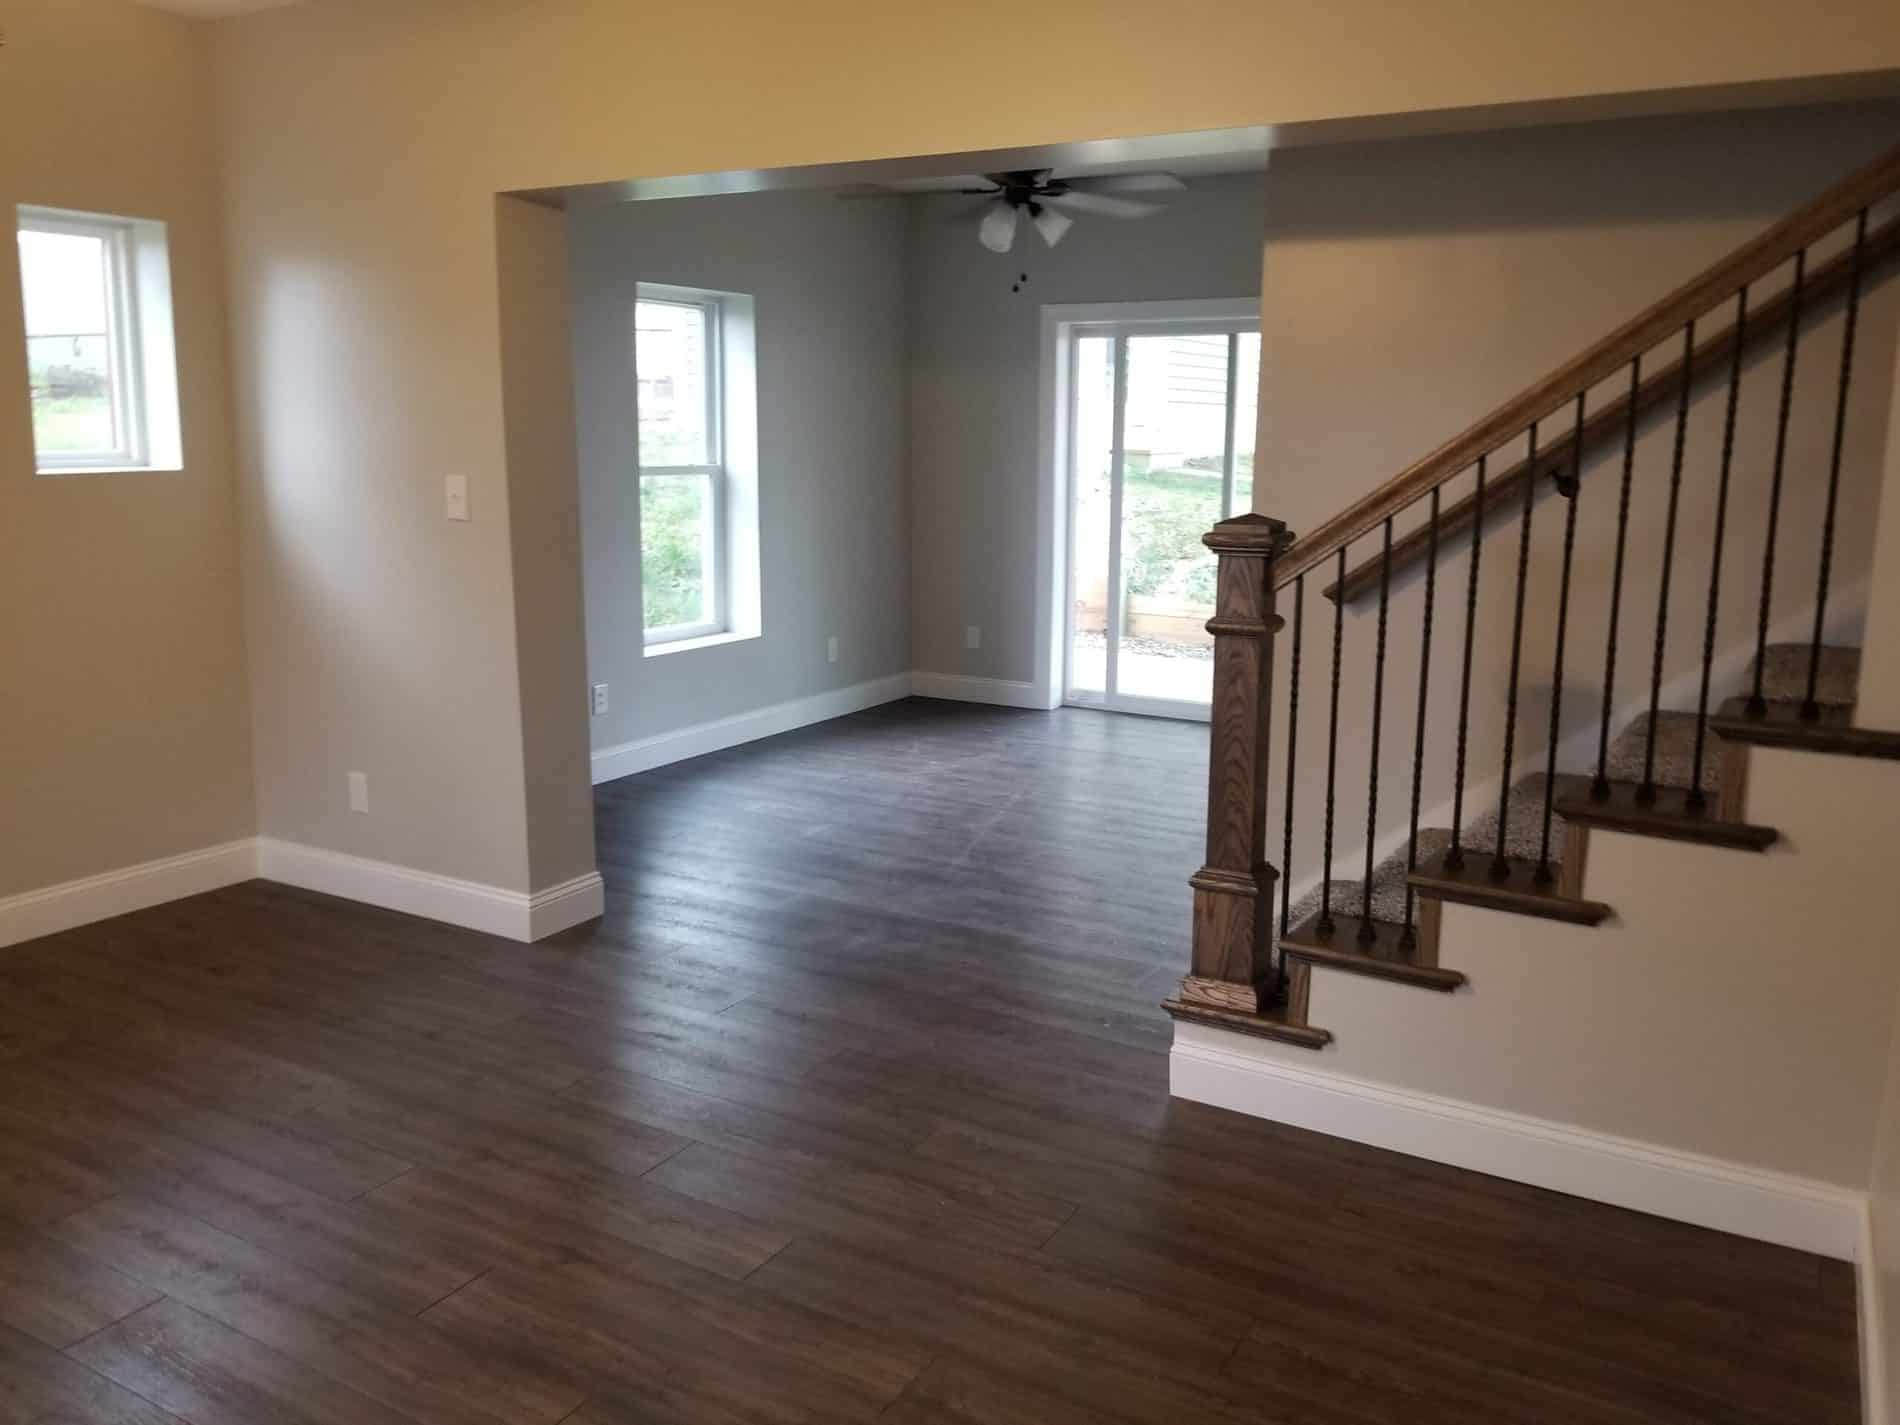 Home Remodeling with Open Floor Plan